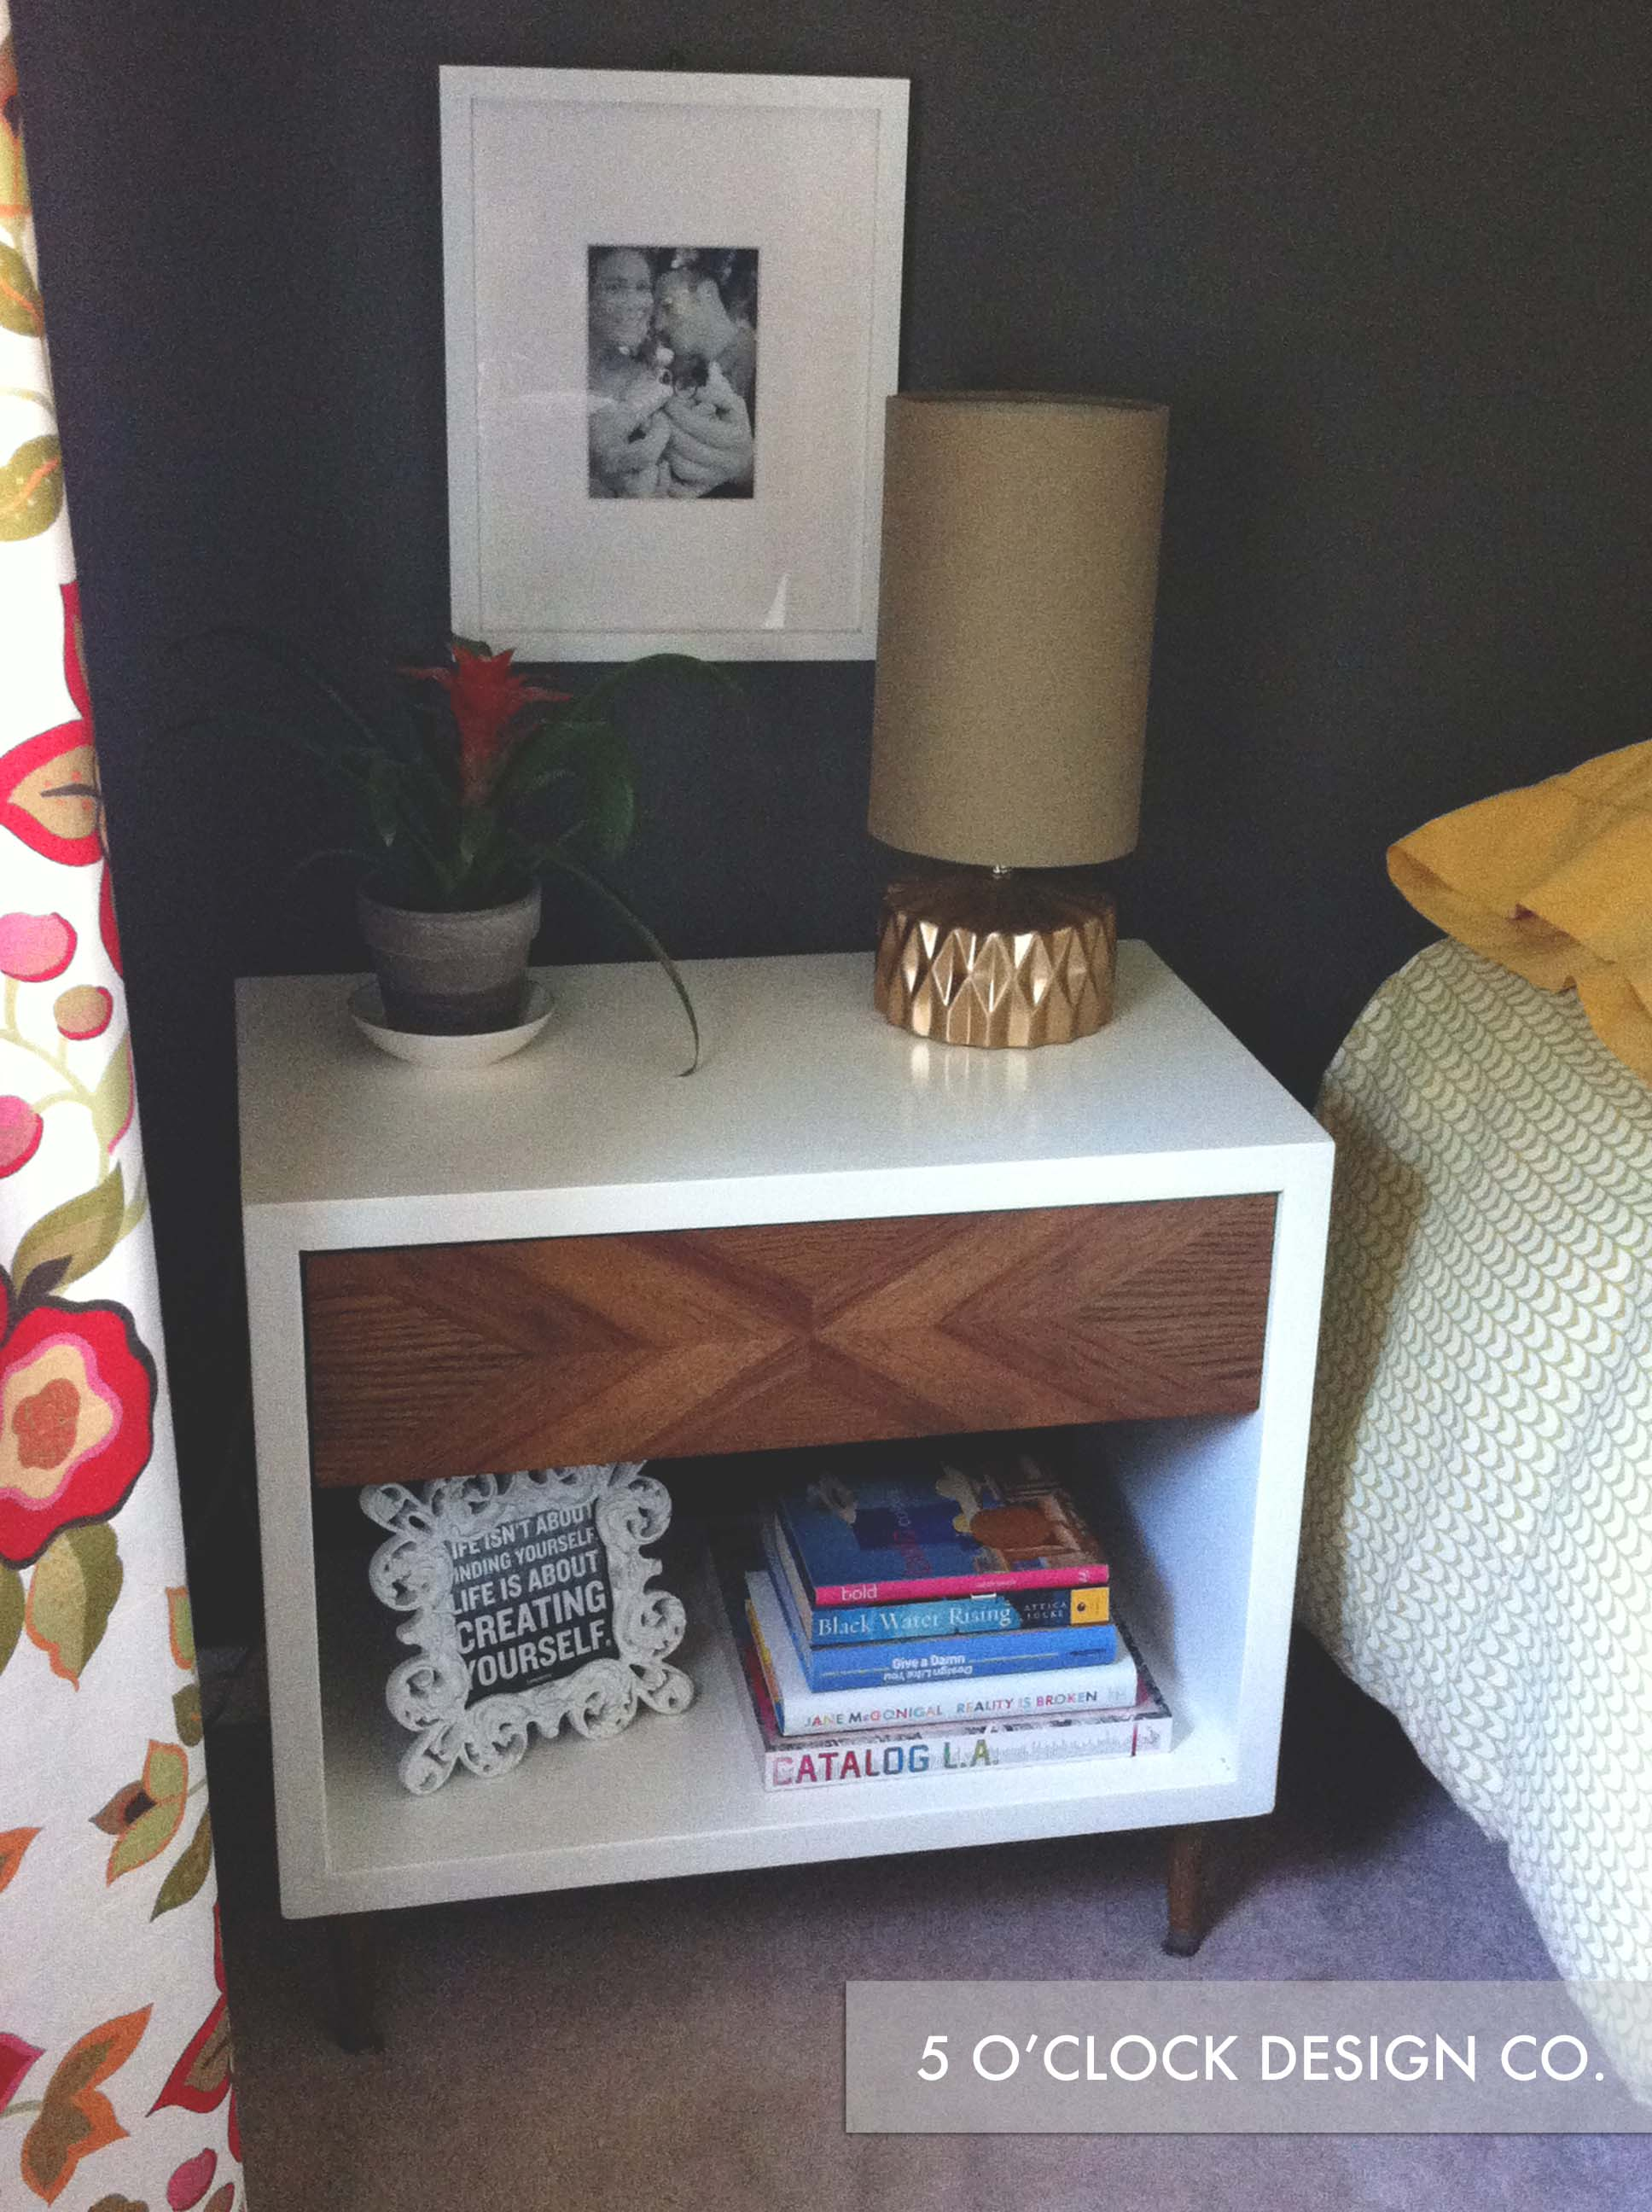 End Table Makeover // Night Stand // DIY // Mid Century // 5 O'Clock Design Co.